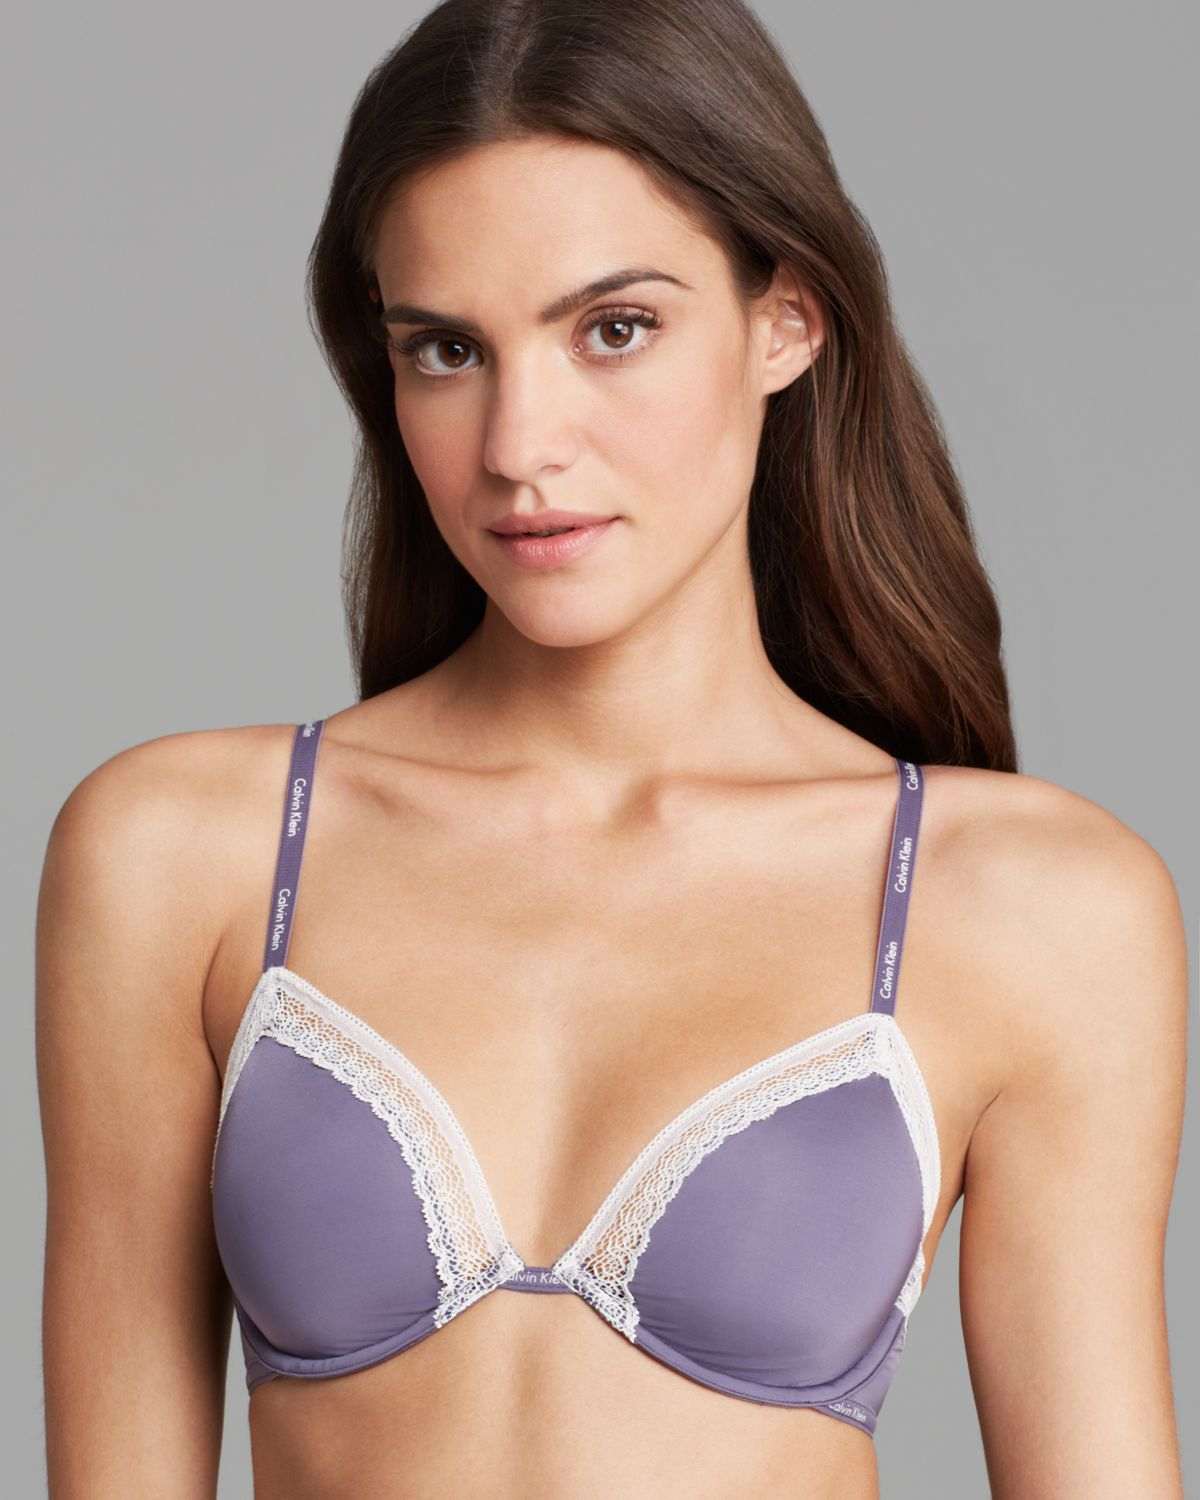 09624d076fc Lyst - Calvin Klein Underwire Bra Perfectly Fit Sexy Signature ...